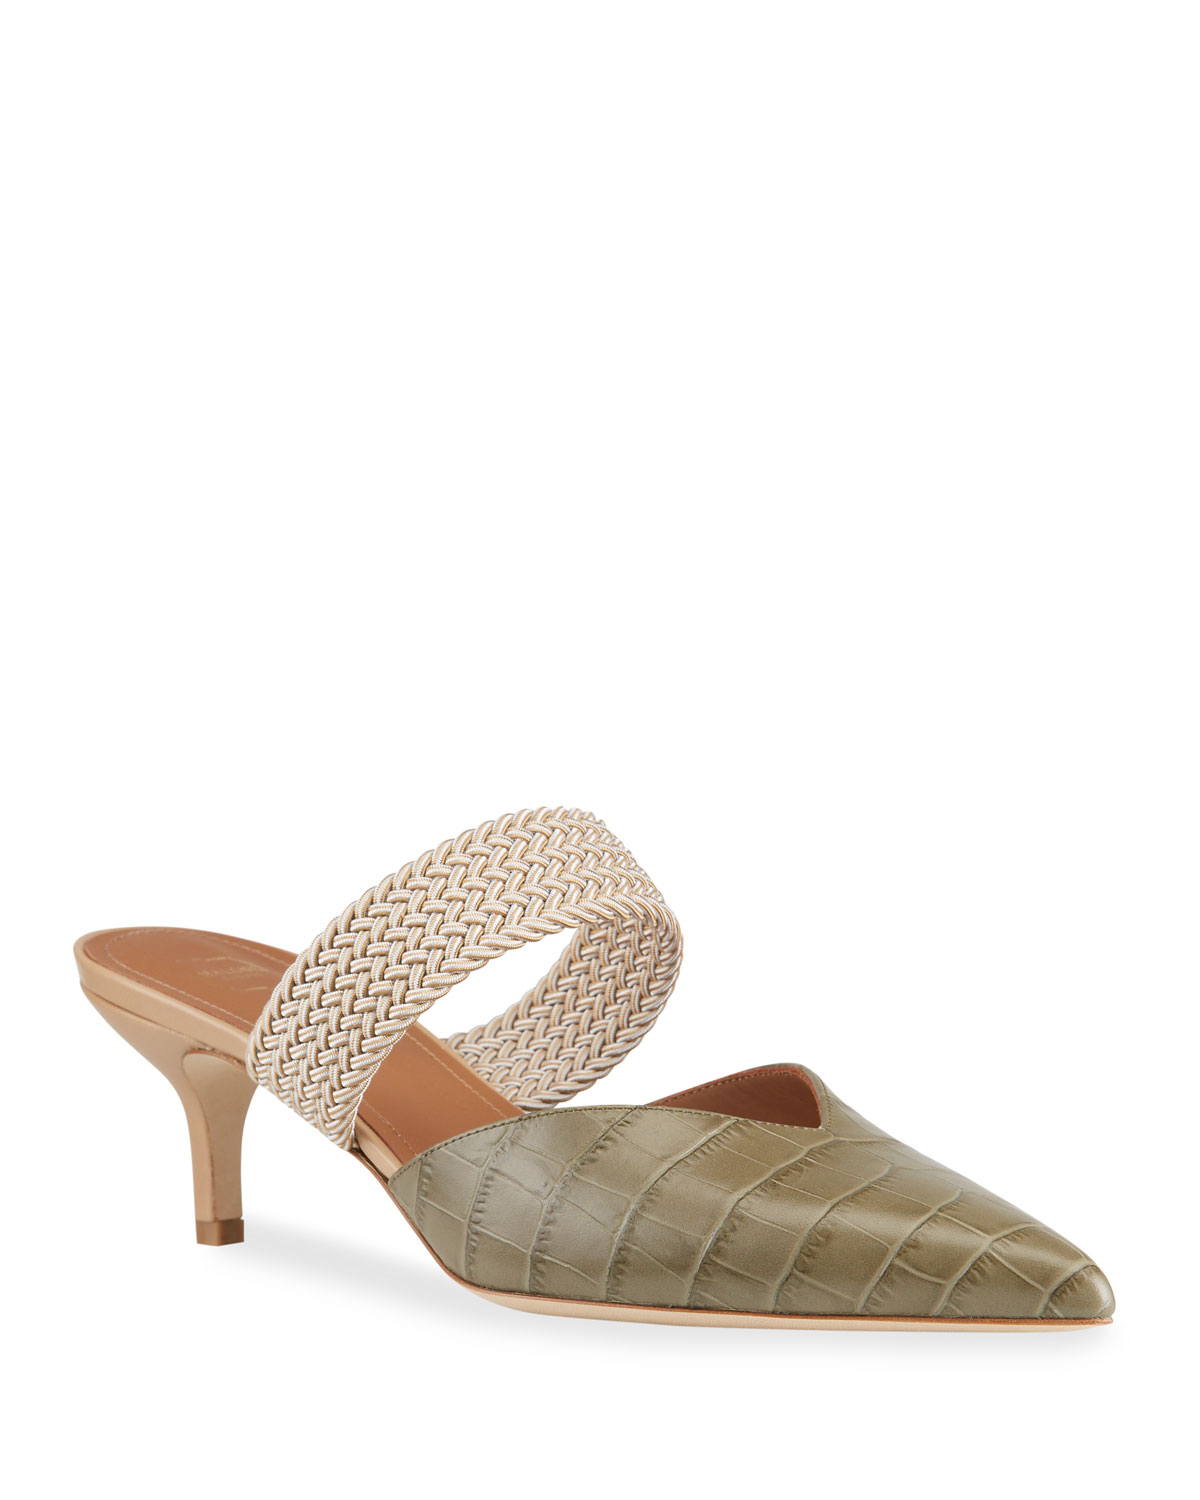 Malone Souliers MAISIE 45MM MOCK CROC MULES